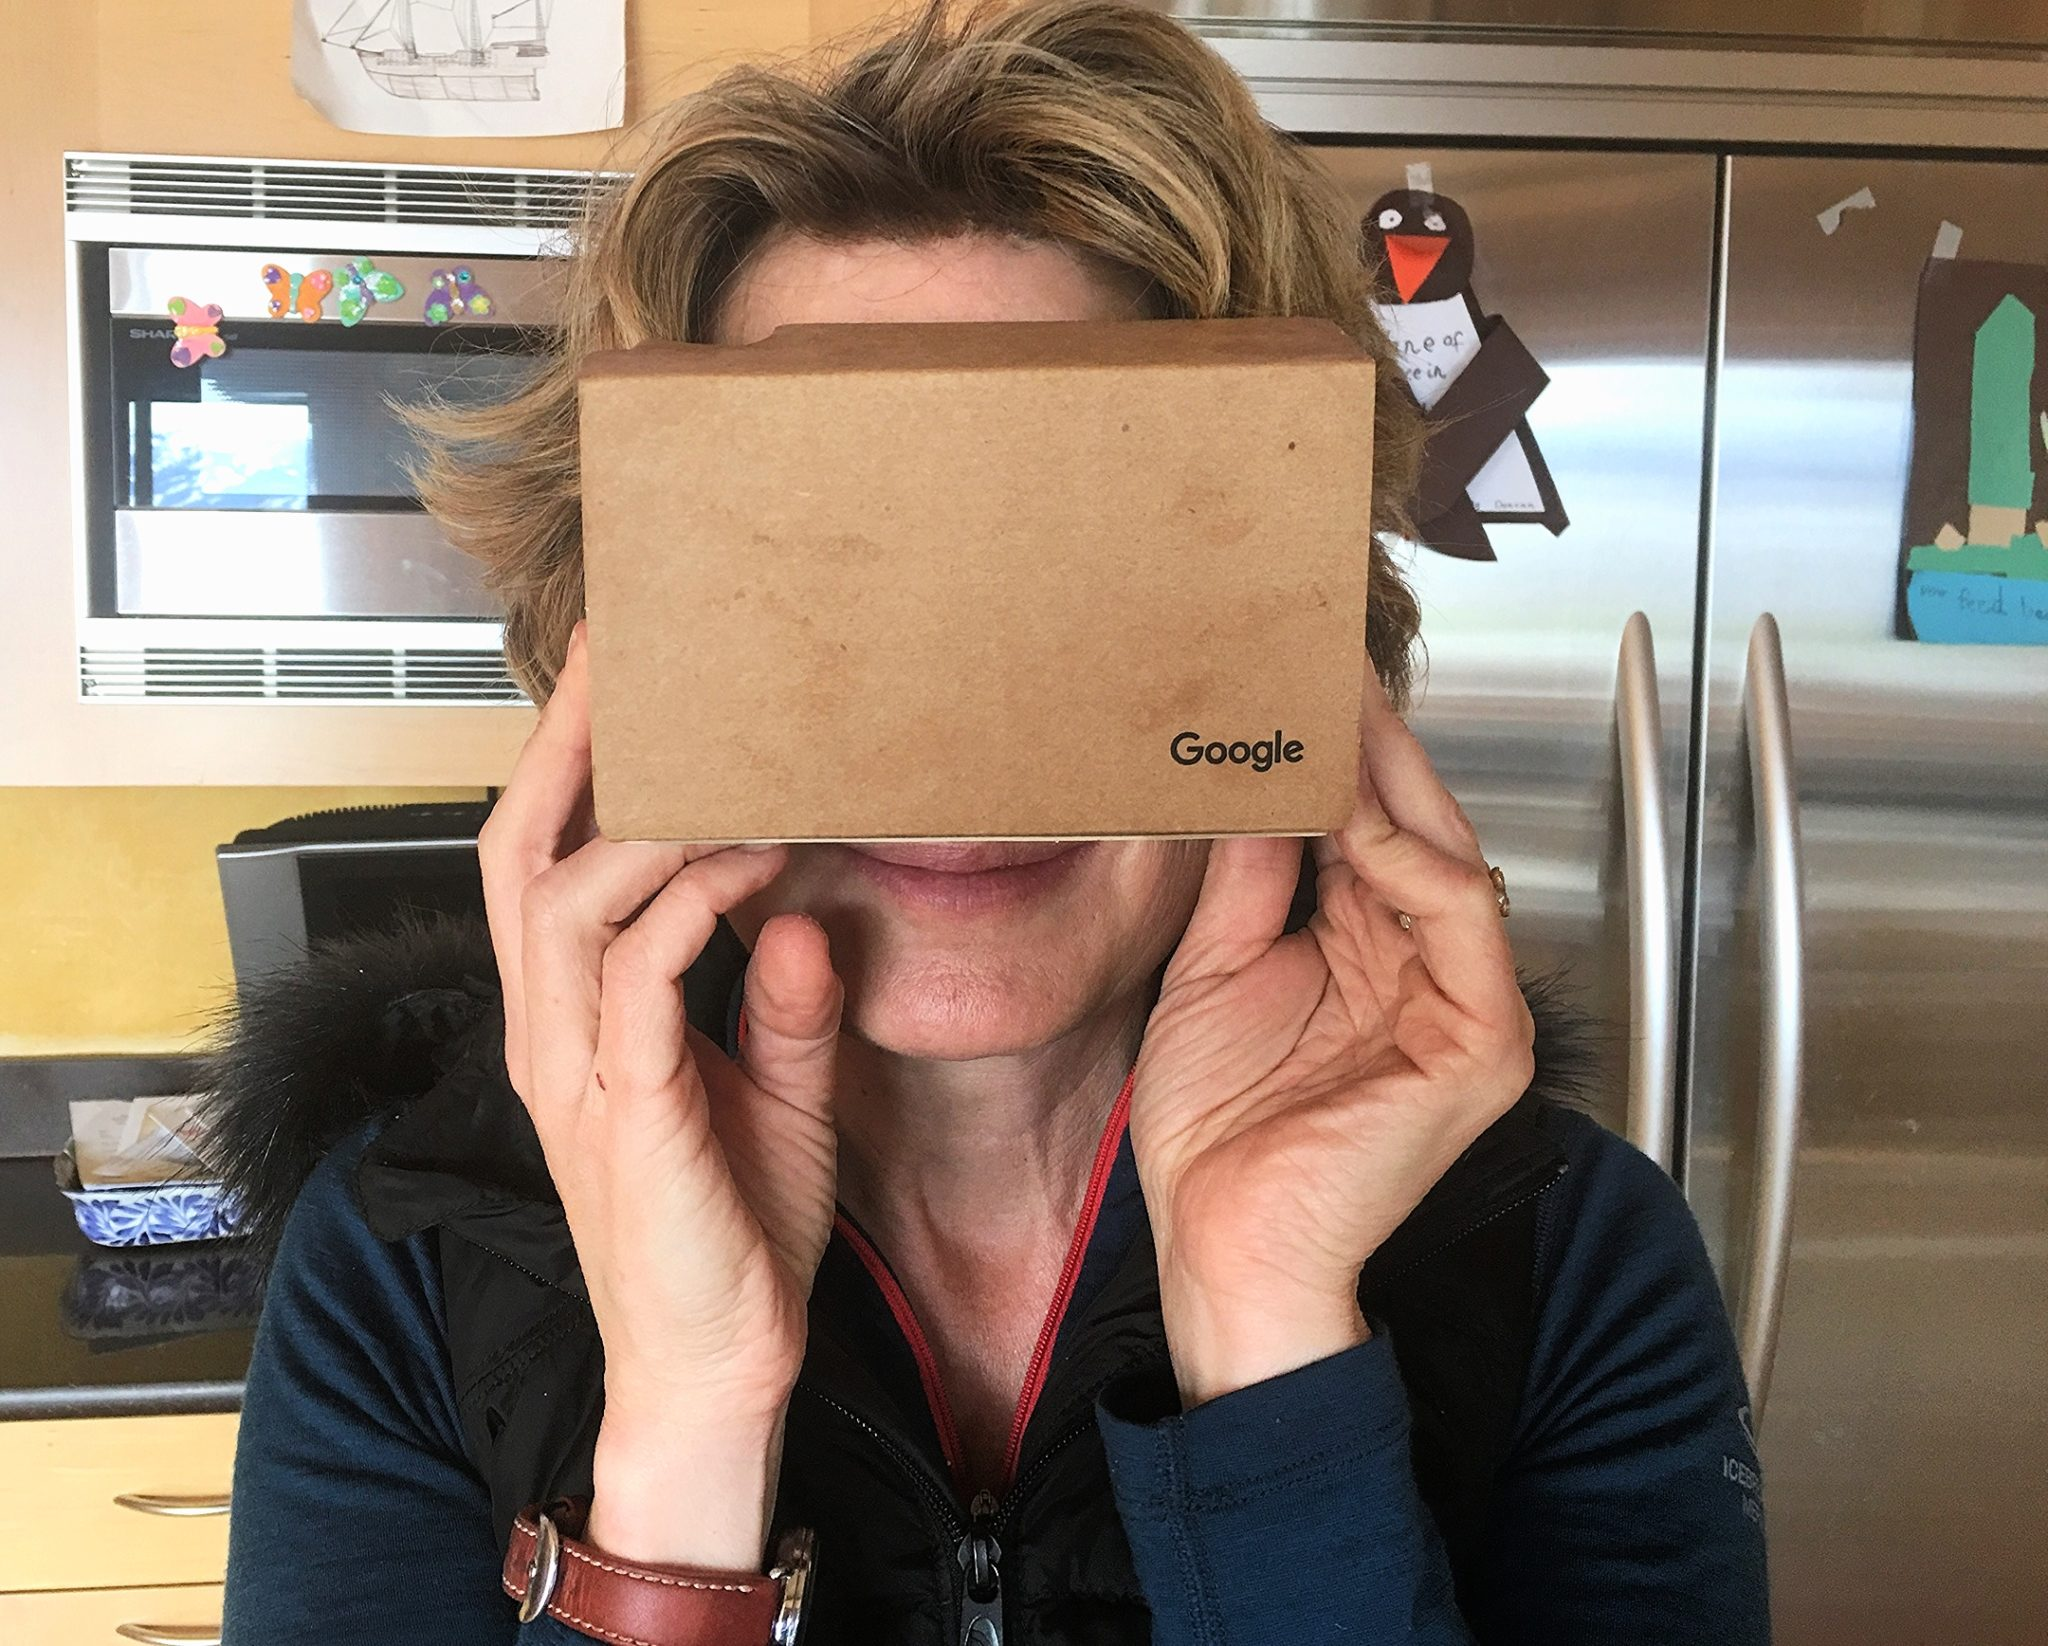 Google cardboard in action